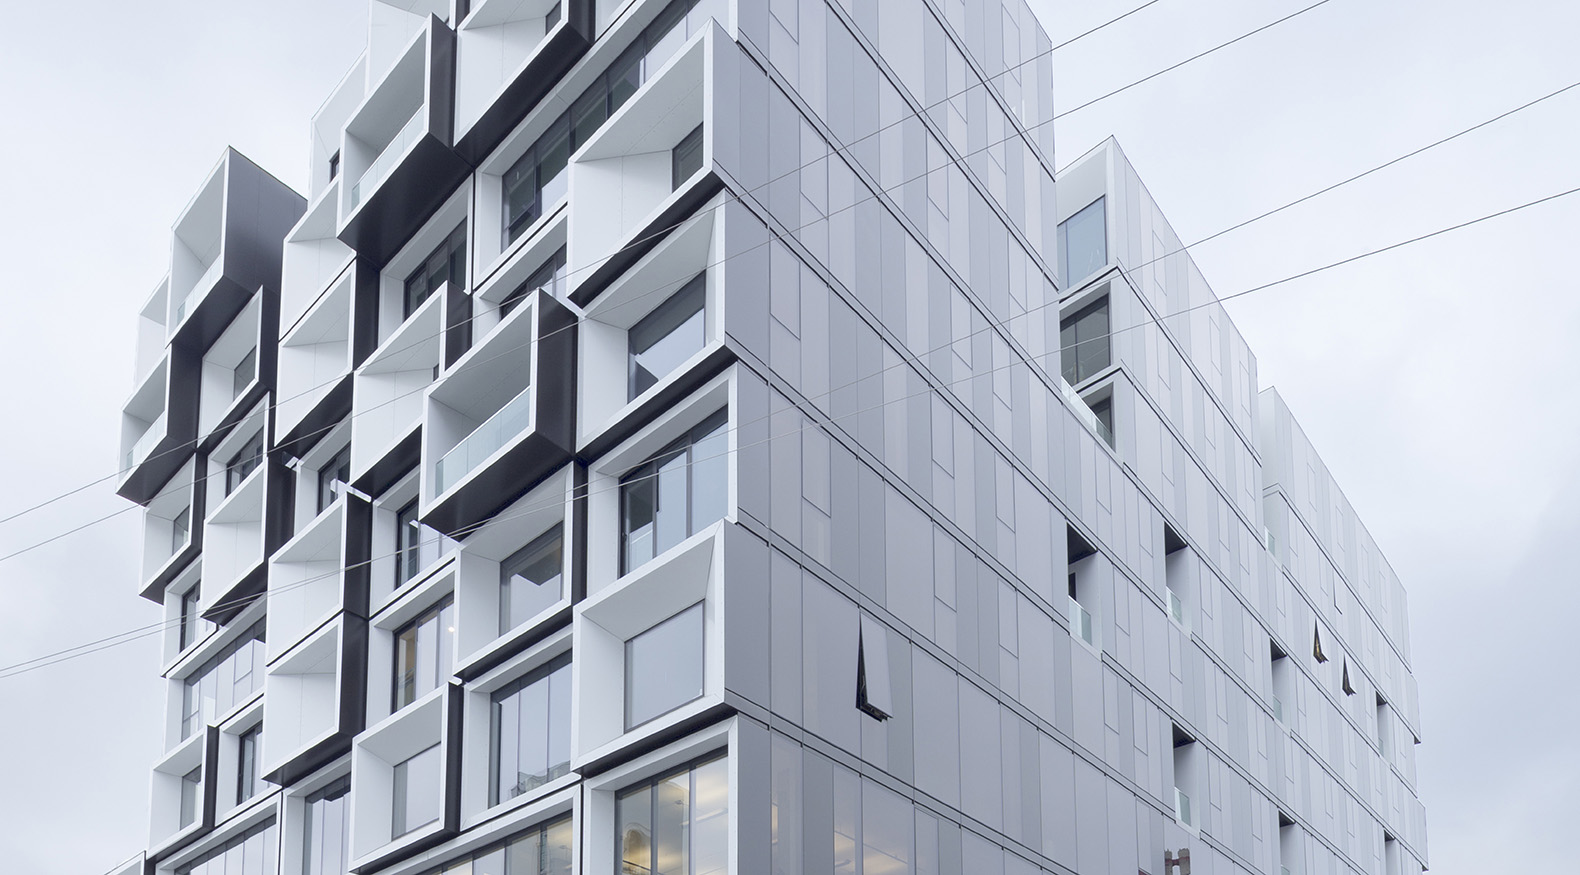 Curtain Wall Architecture : Staggered volumes help make portland s slate building an